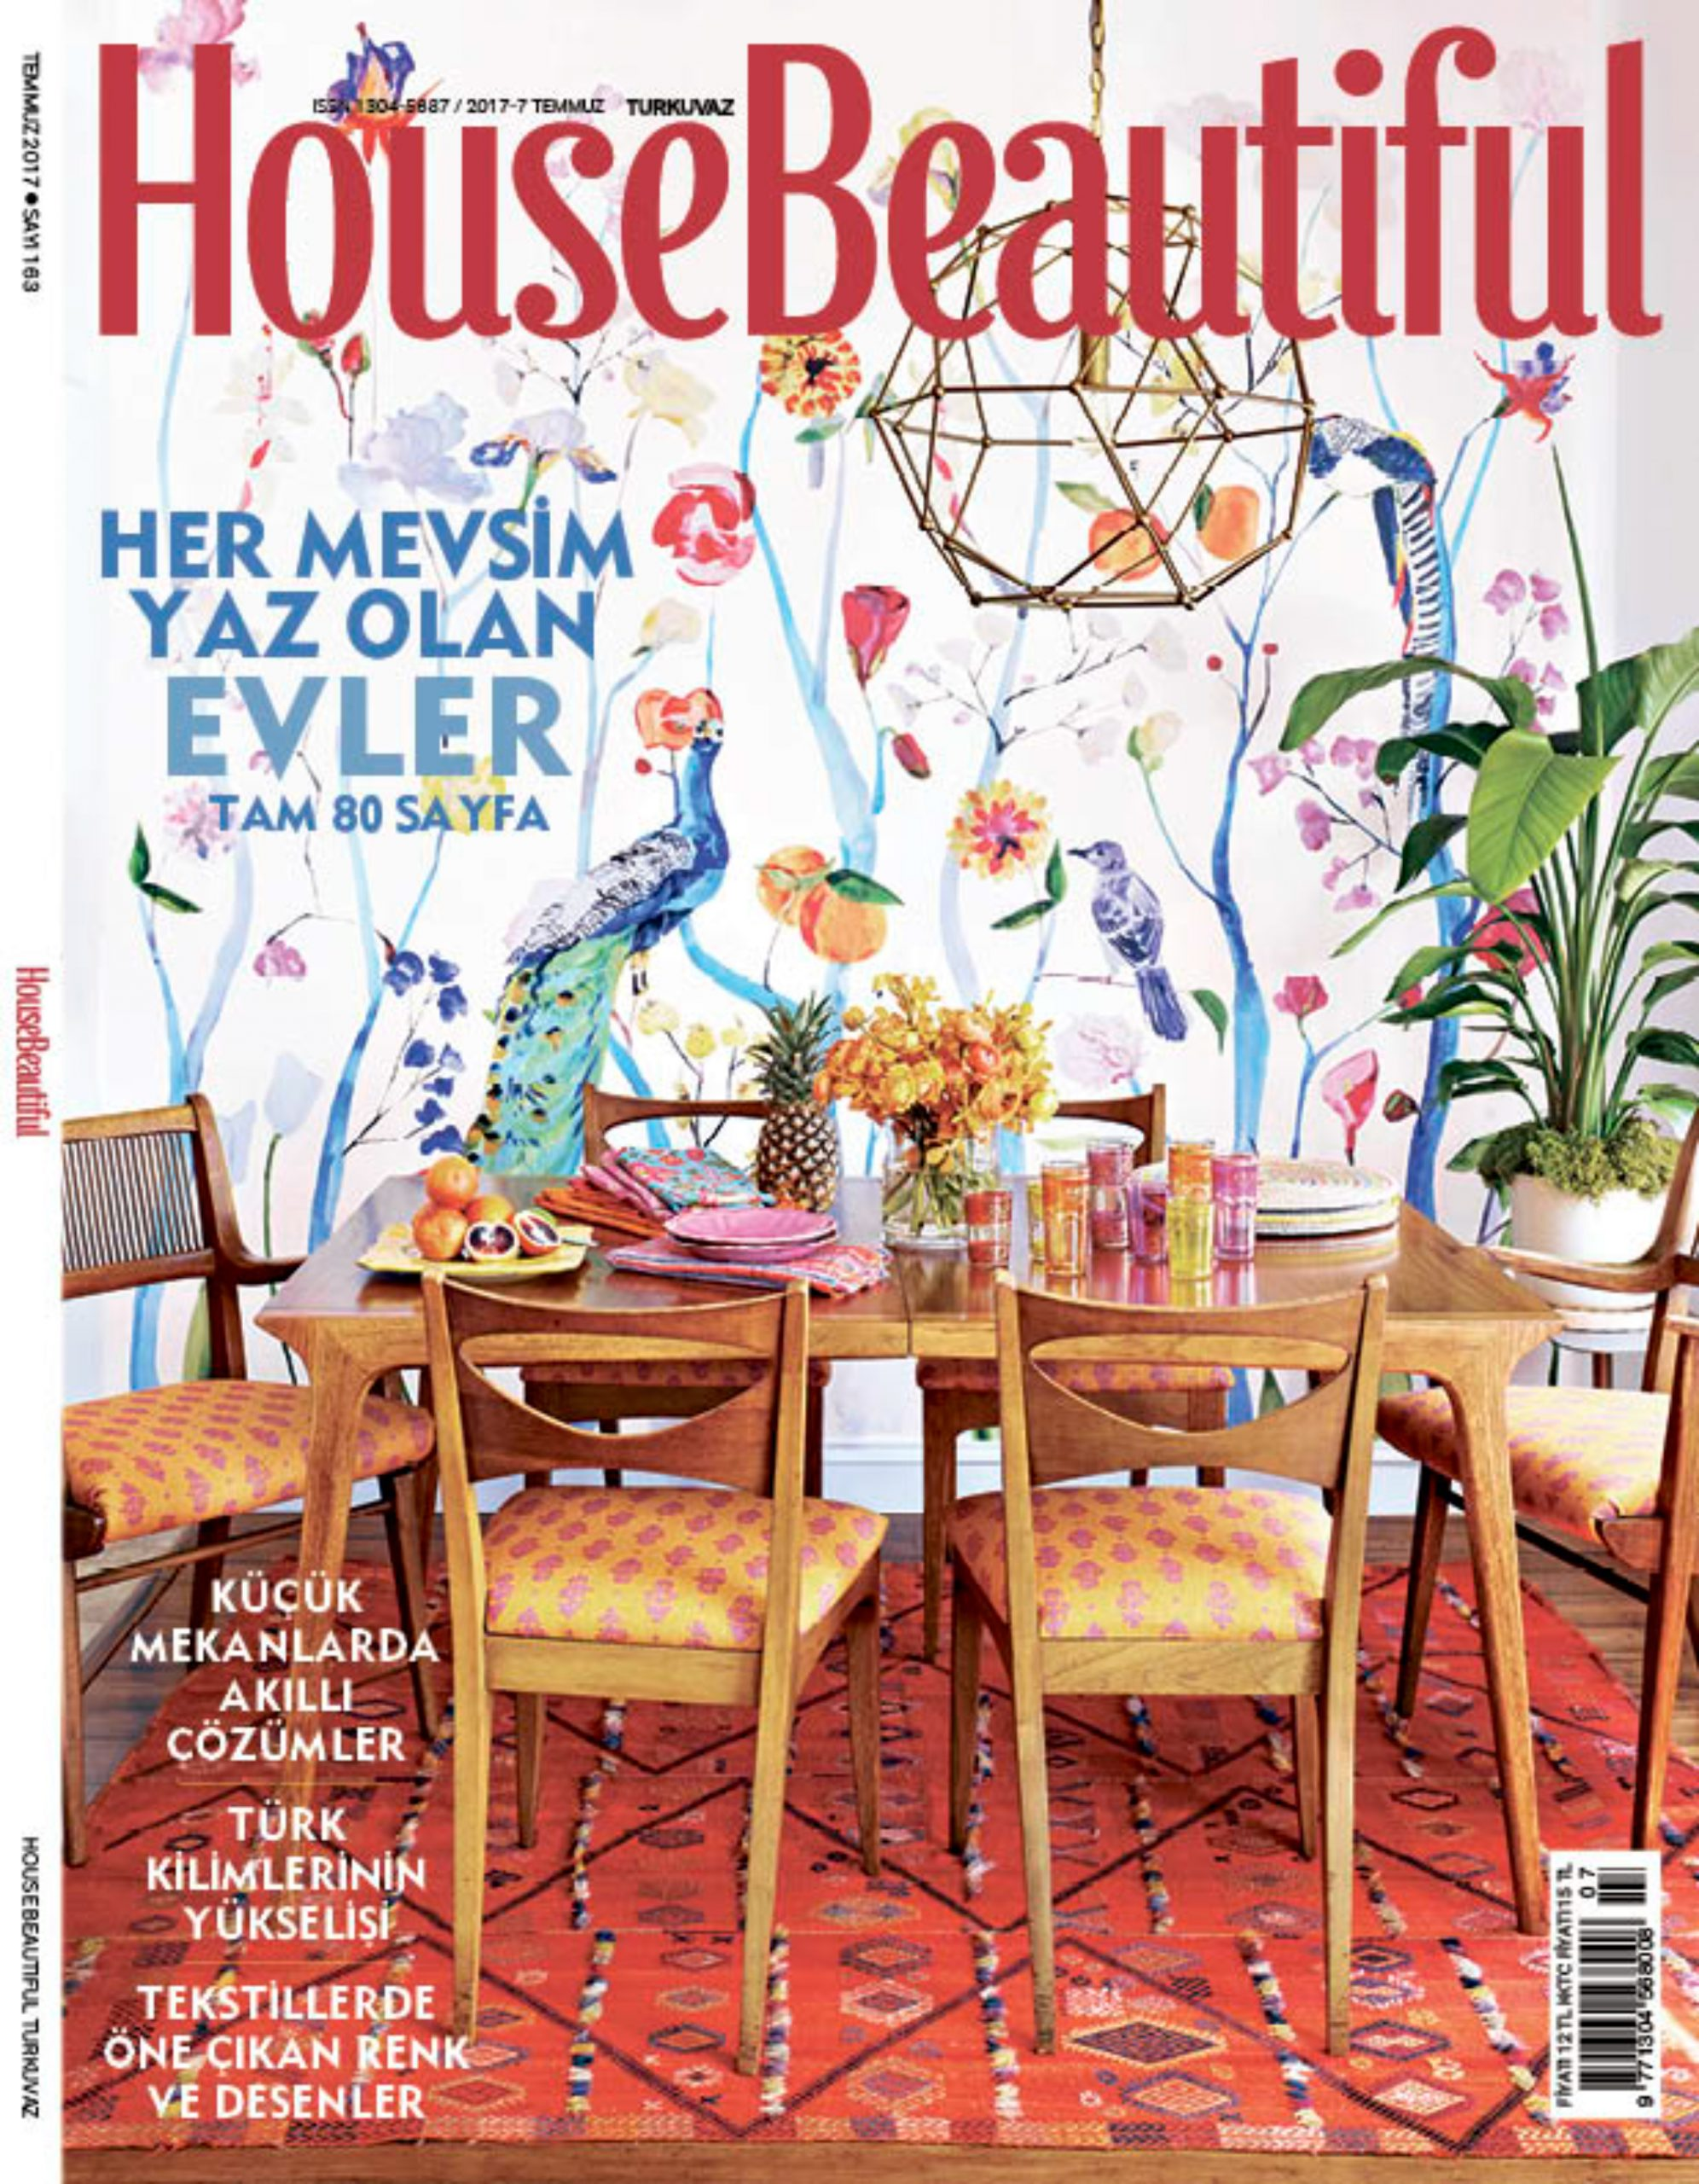 news-house-beautiful-temmuz-2017-1